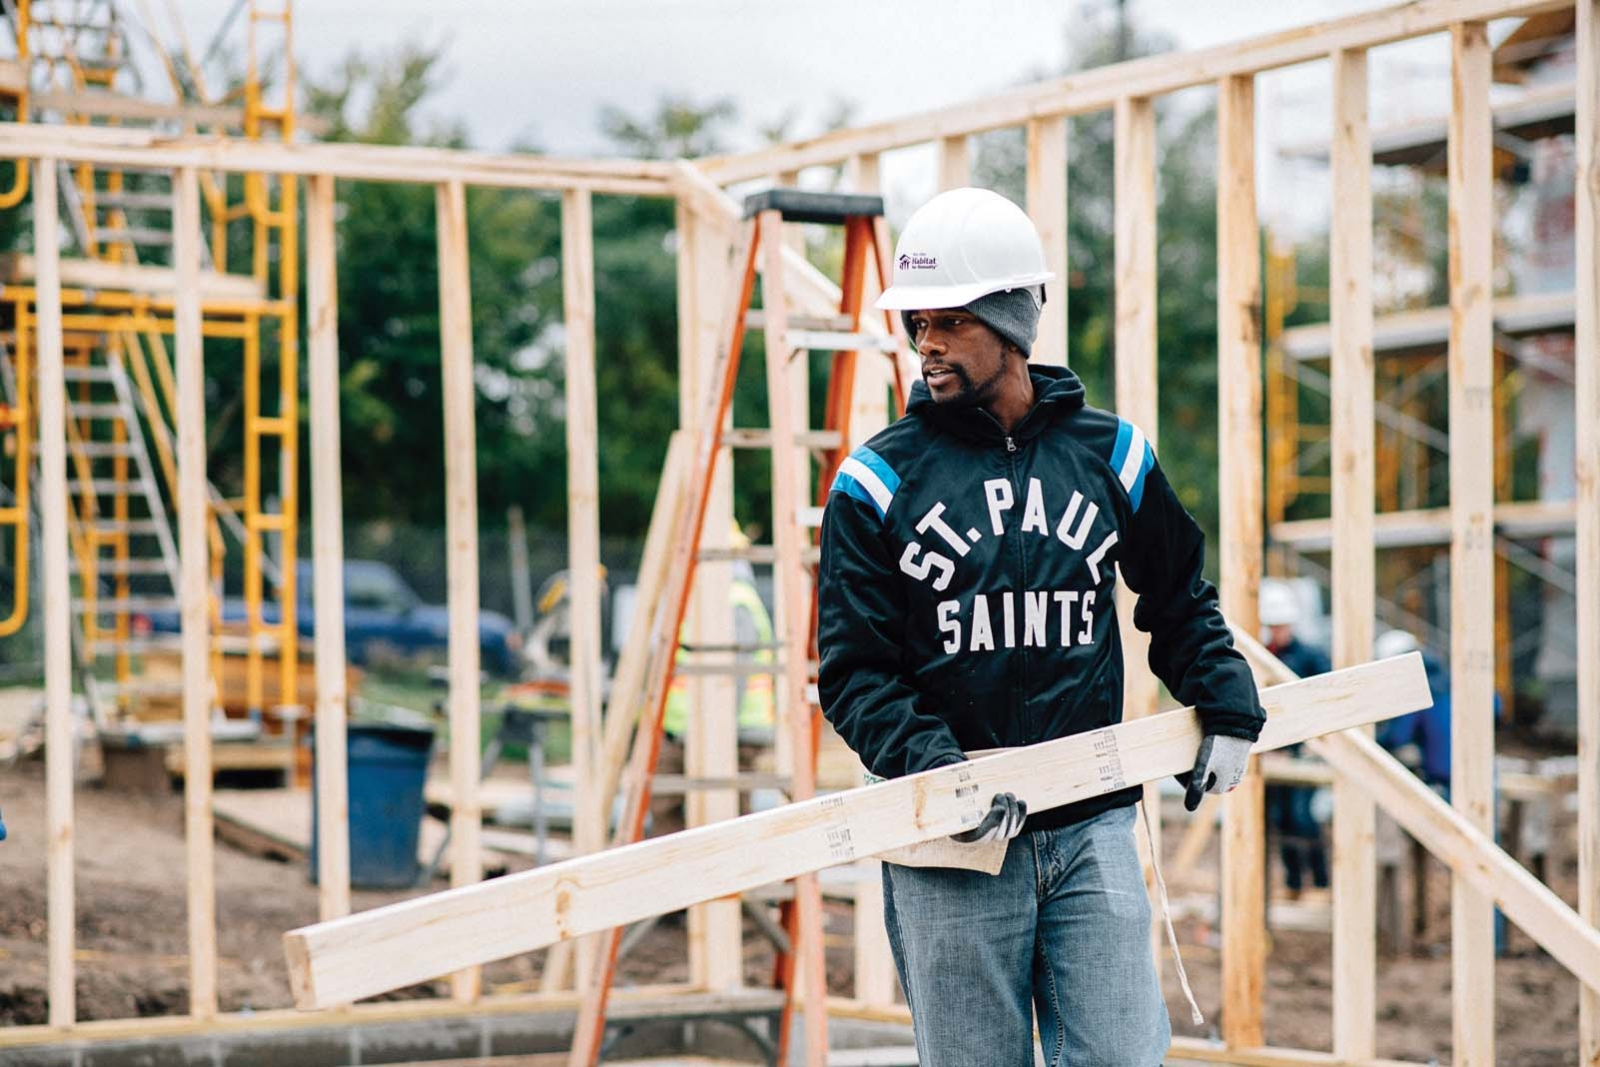 St. Paul mayoy Melvin Carter helping build a home for Habitat for Humanity.